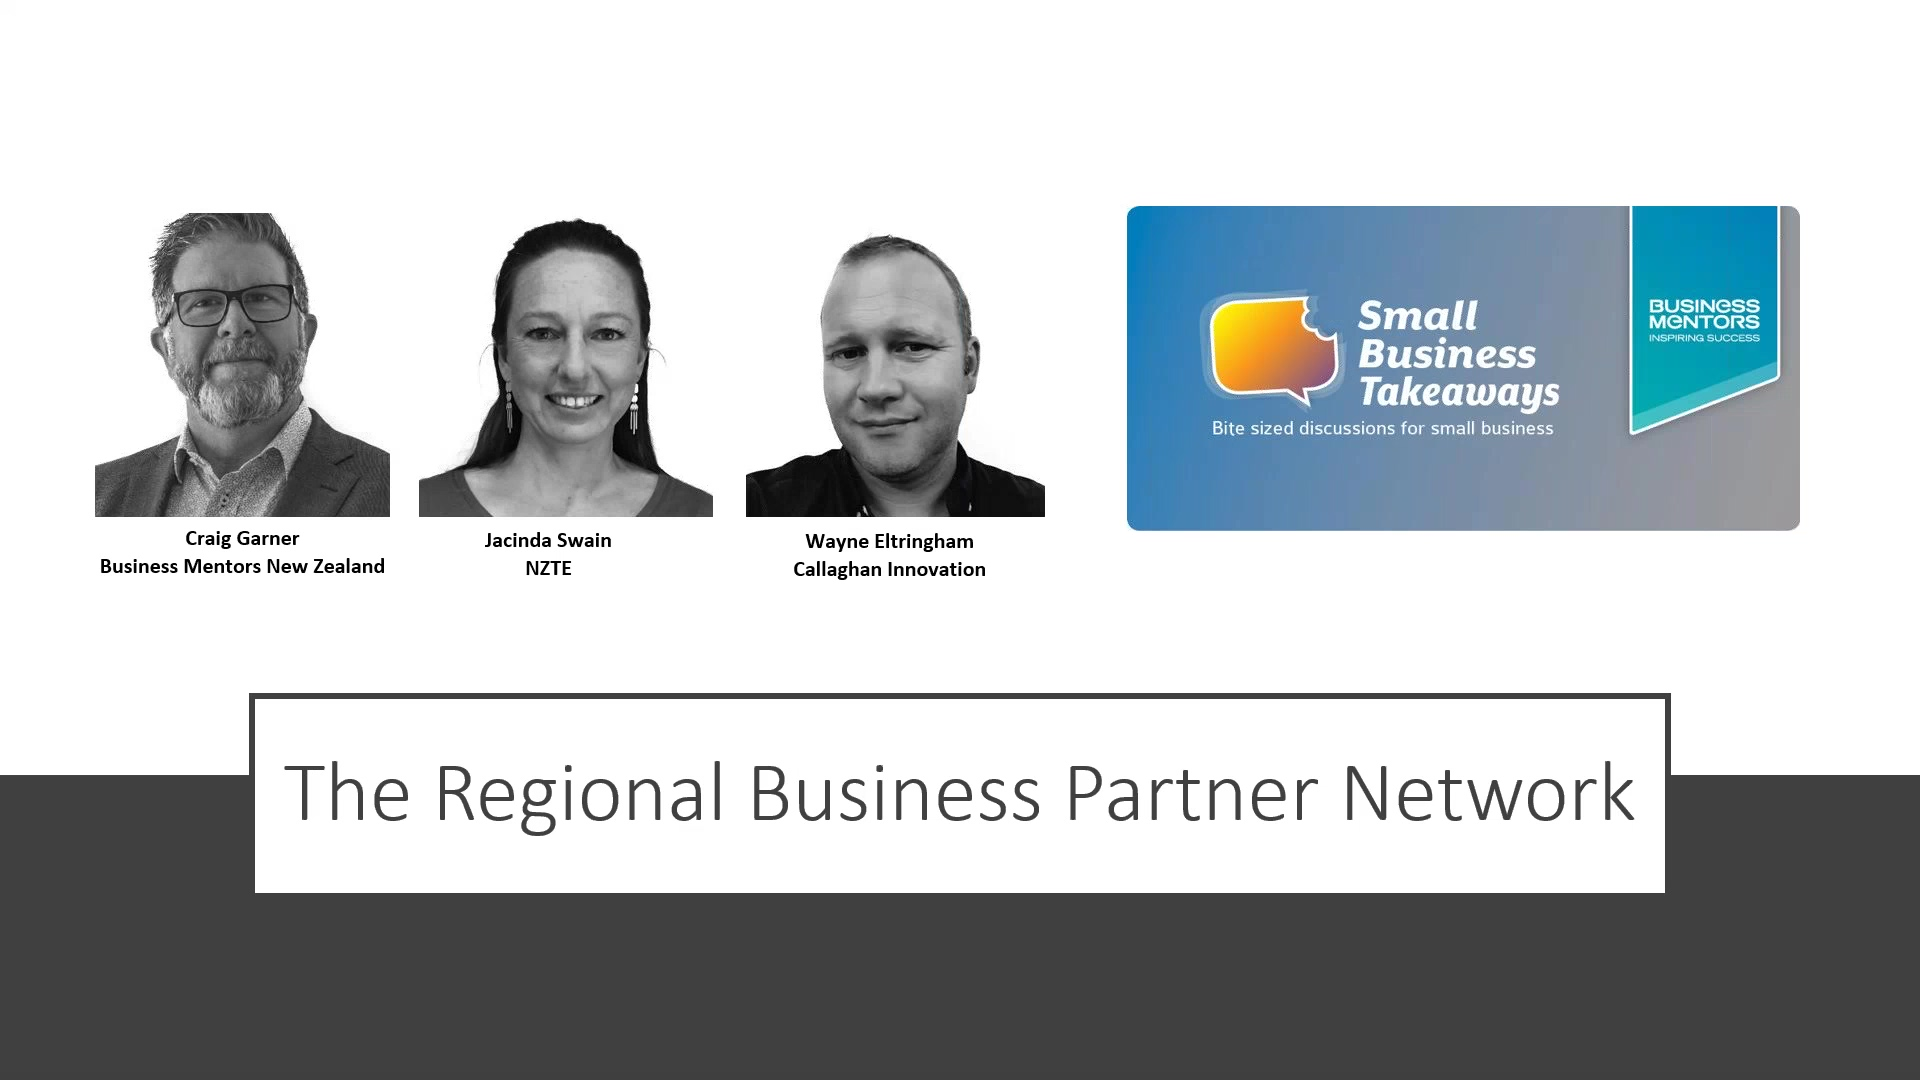 Business Mentors NZ Small Business Takeaways_ The Regional Business Partner Network